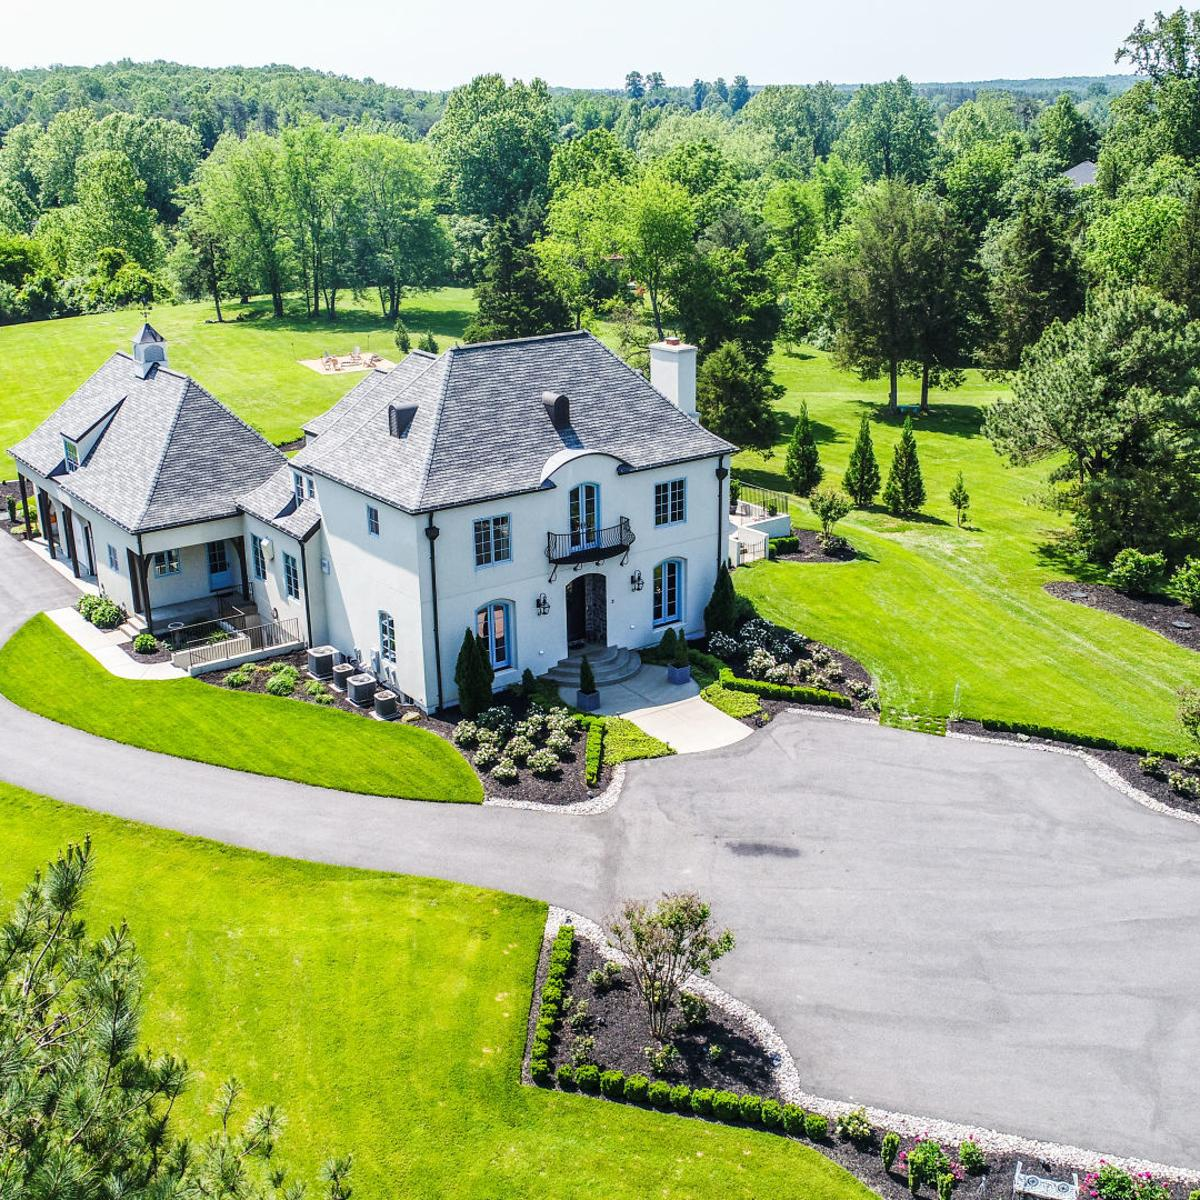 Home's Old World design brings French Country chic to ... on country home house plans, french style house plans, 6 bedroom country floor plans, french house floor plans, home narrow lot house plans, new orleans french quarter floor plans, zero lot line building,